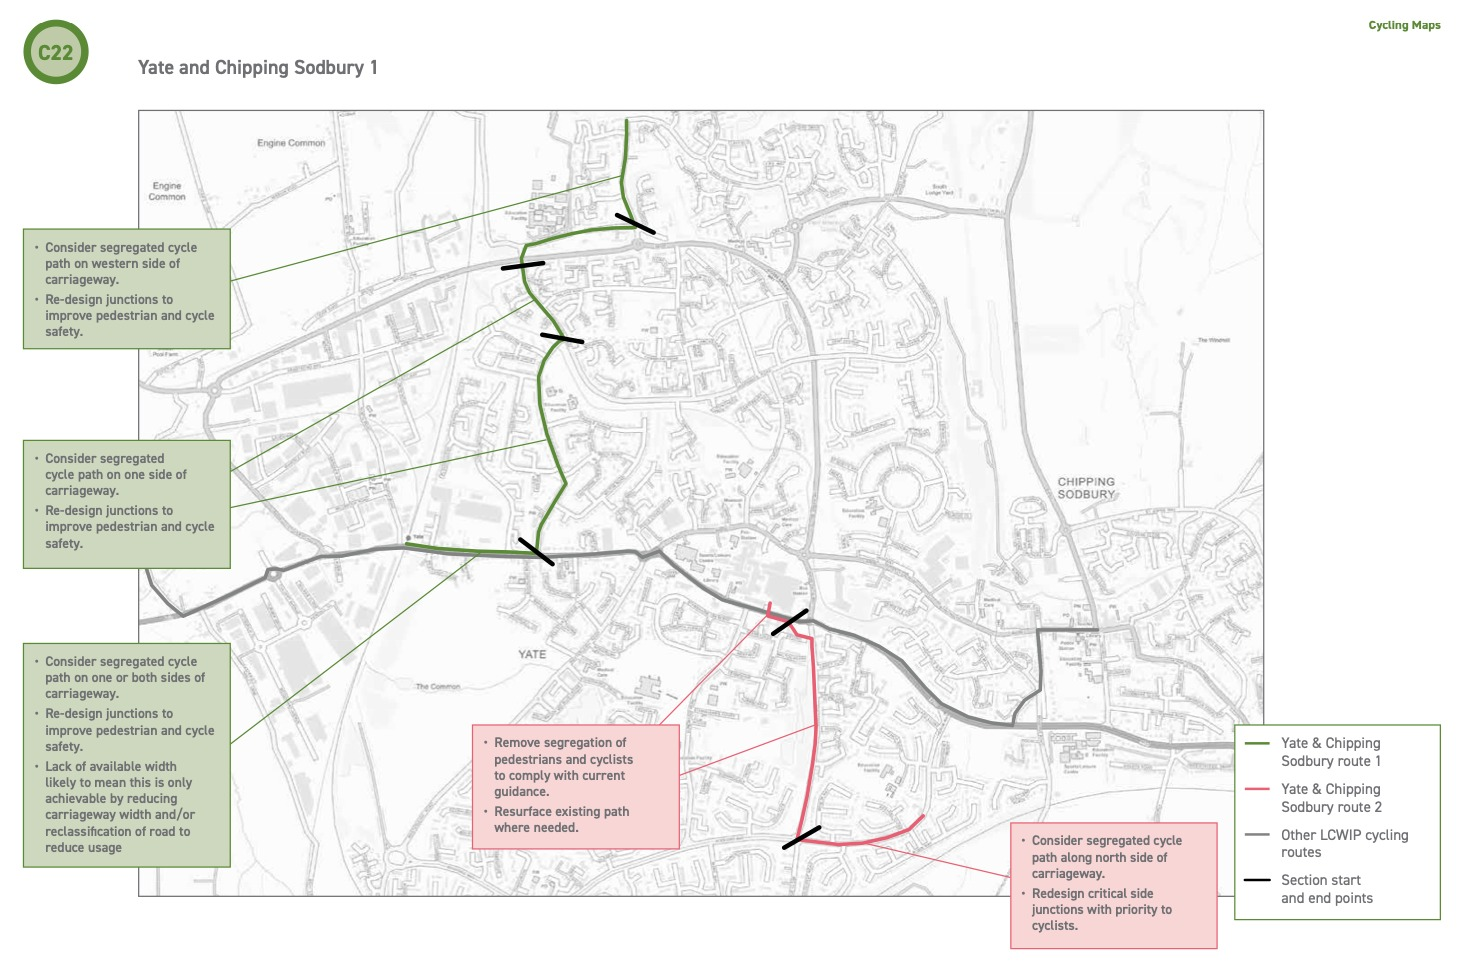 Have your say on new cycling and walking route improvements